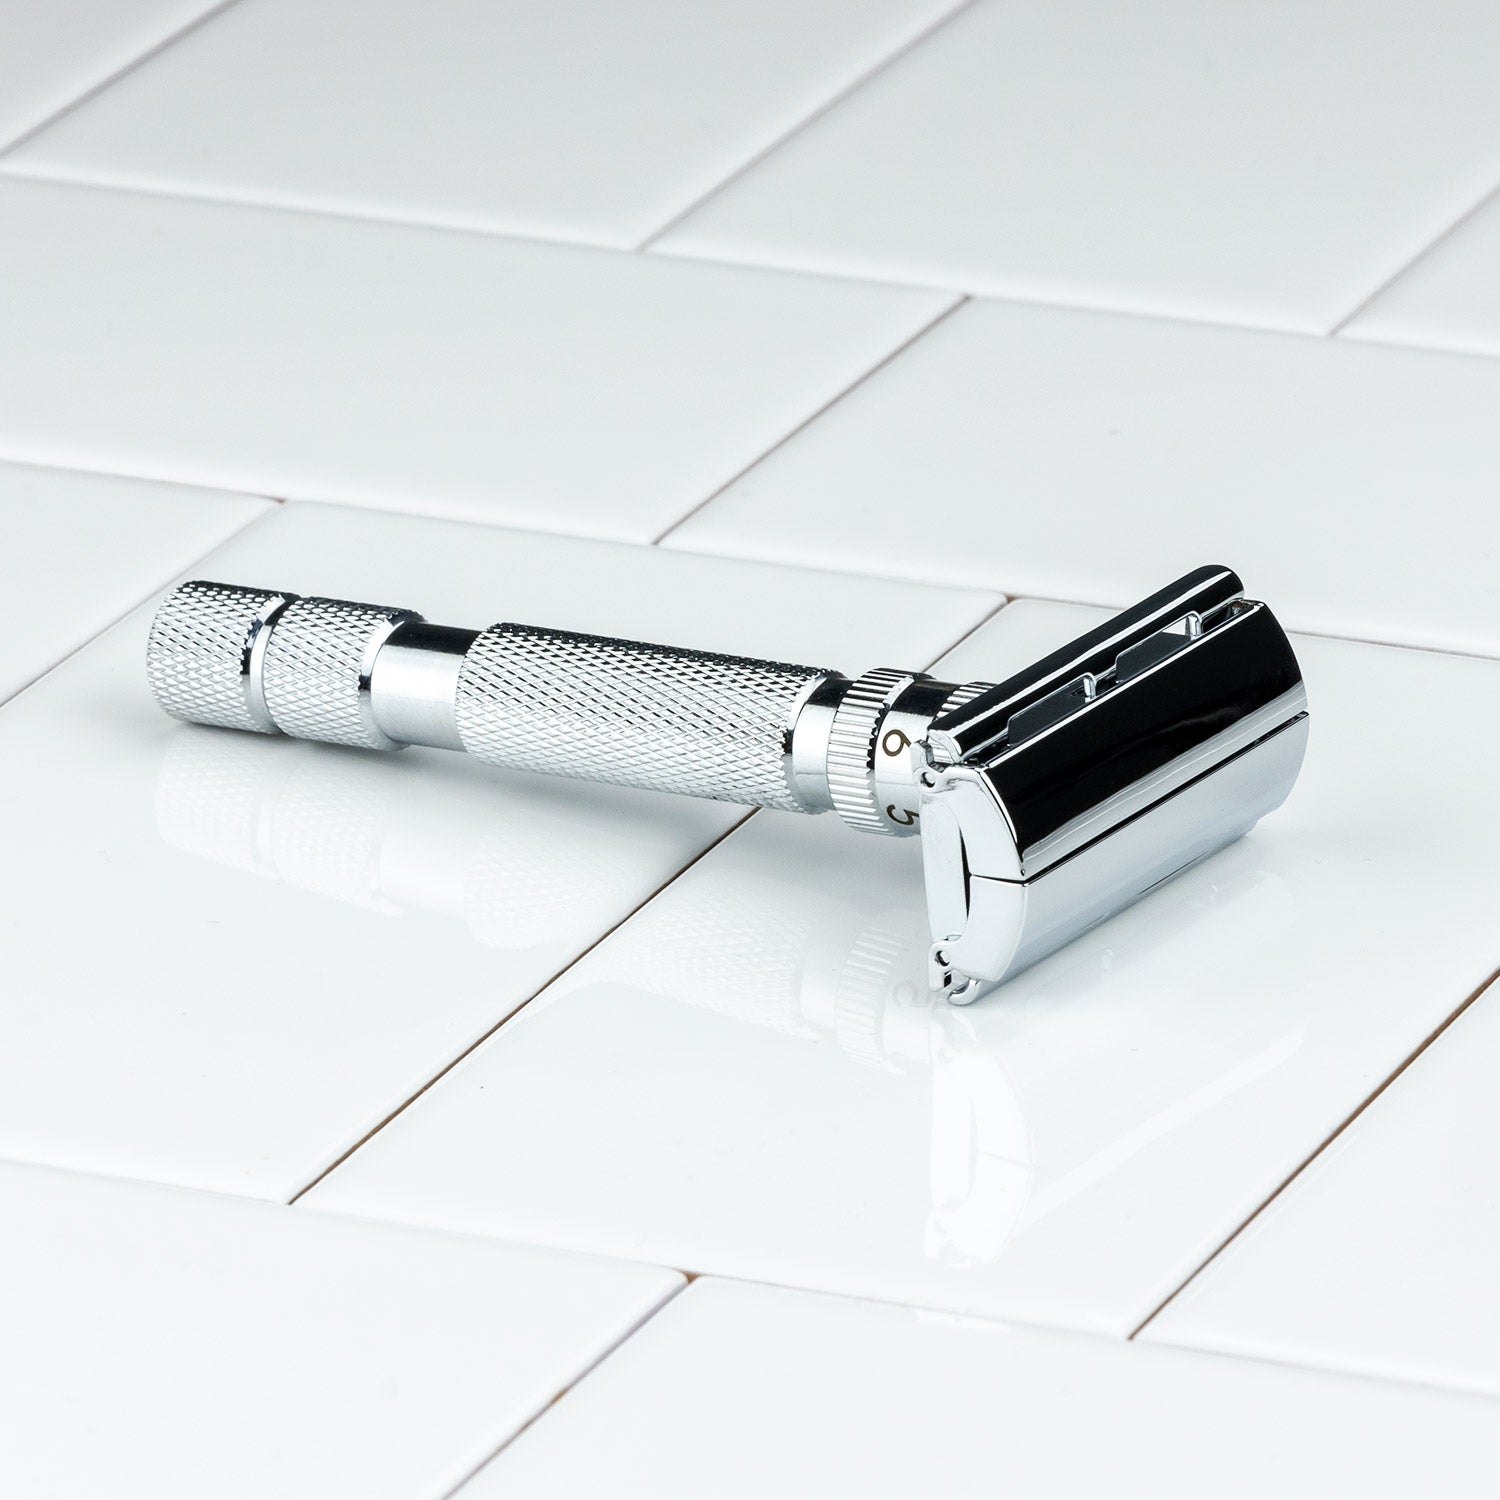 Rockwell Model T Adjustable DE Safety Razor